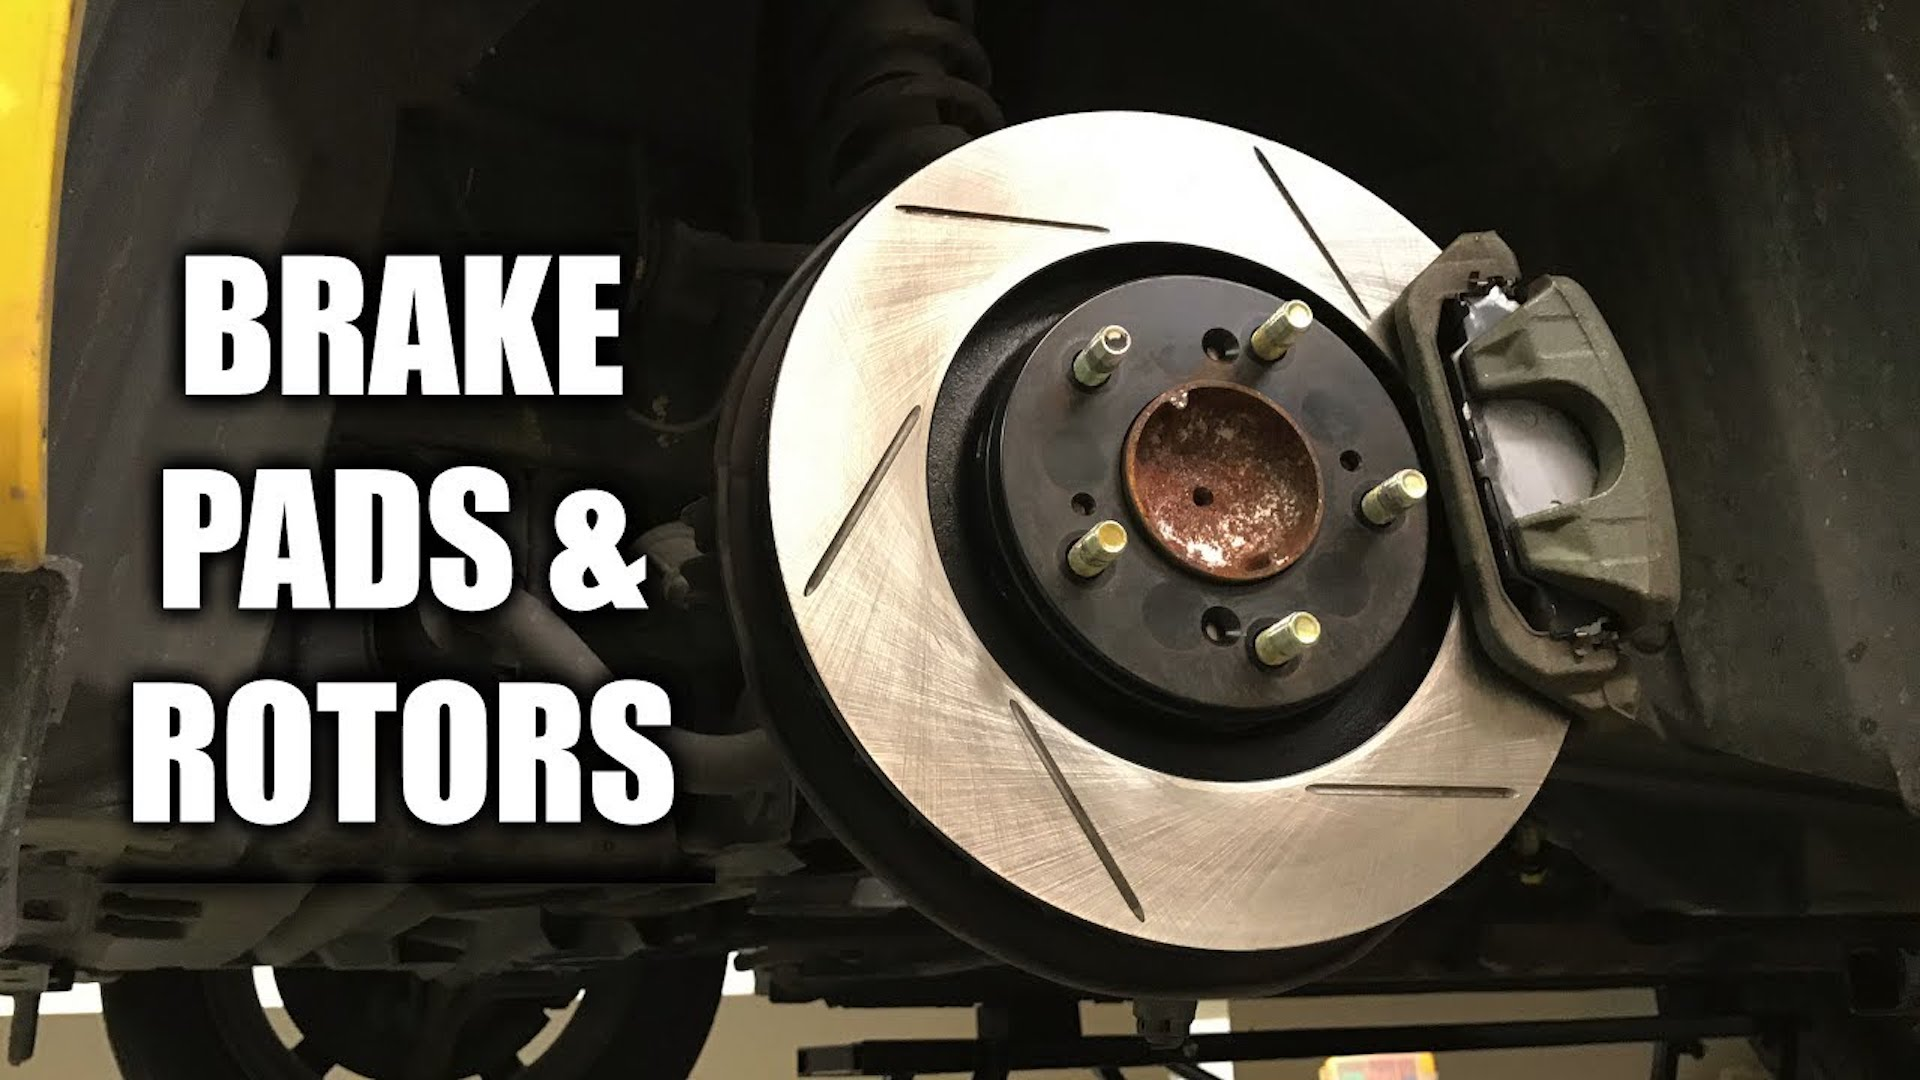 Mercedes Benz Brake Pads And Rotors >> Replacing brake pads and rotors--it's not as hard as you think